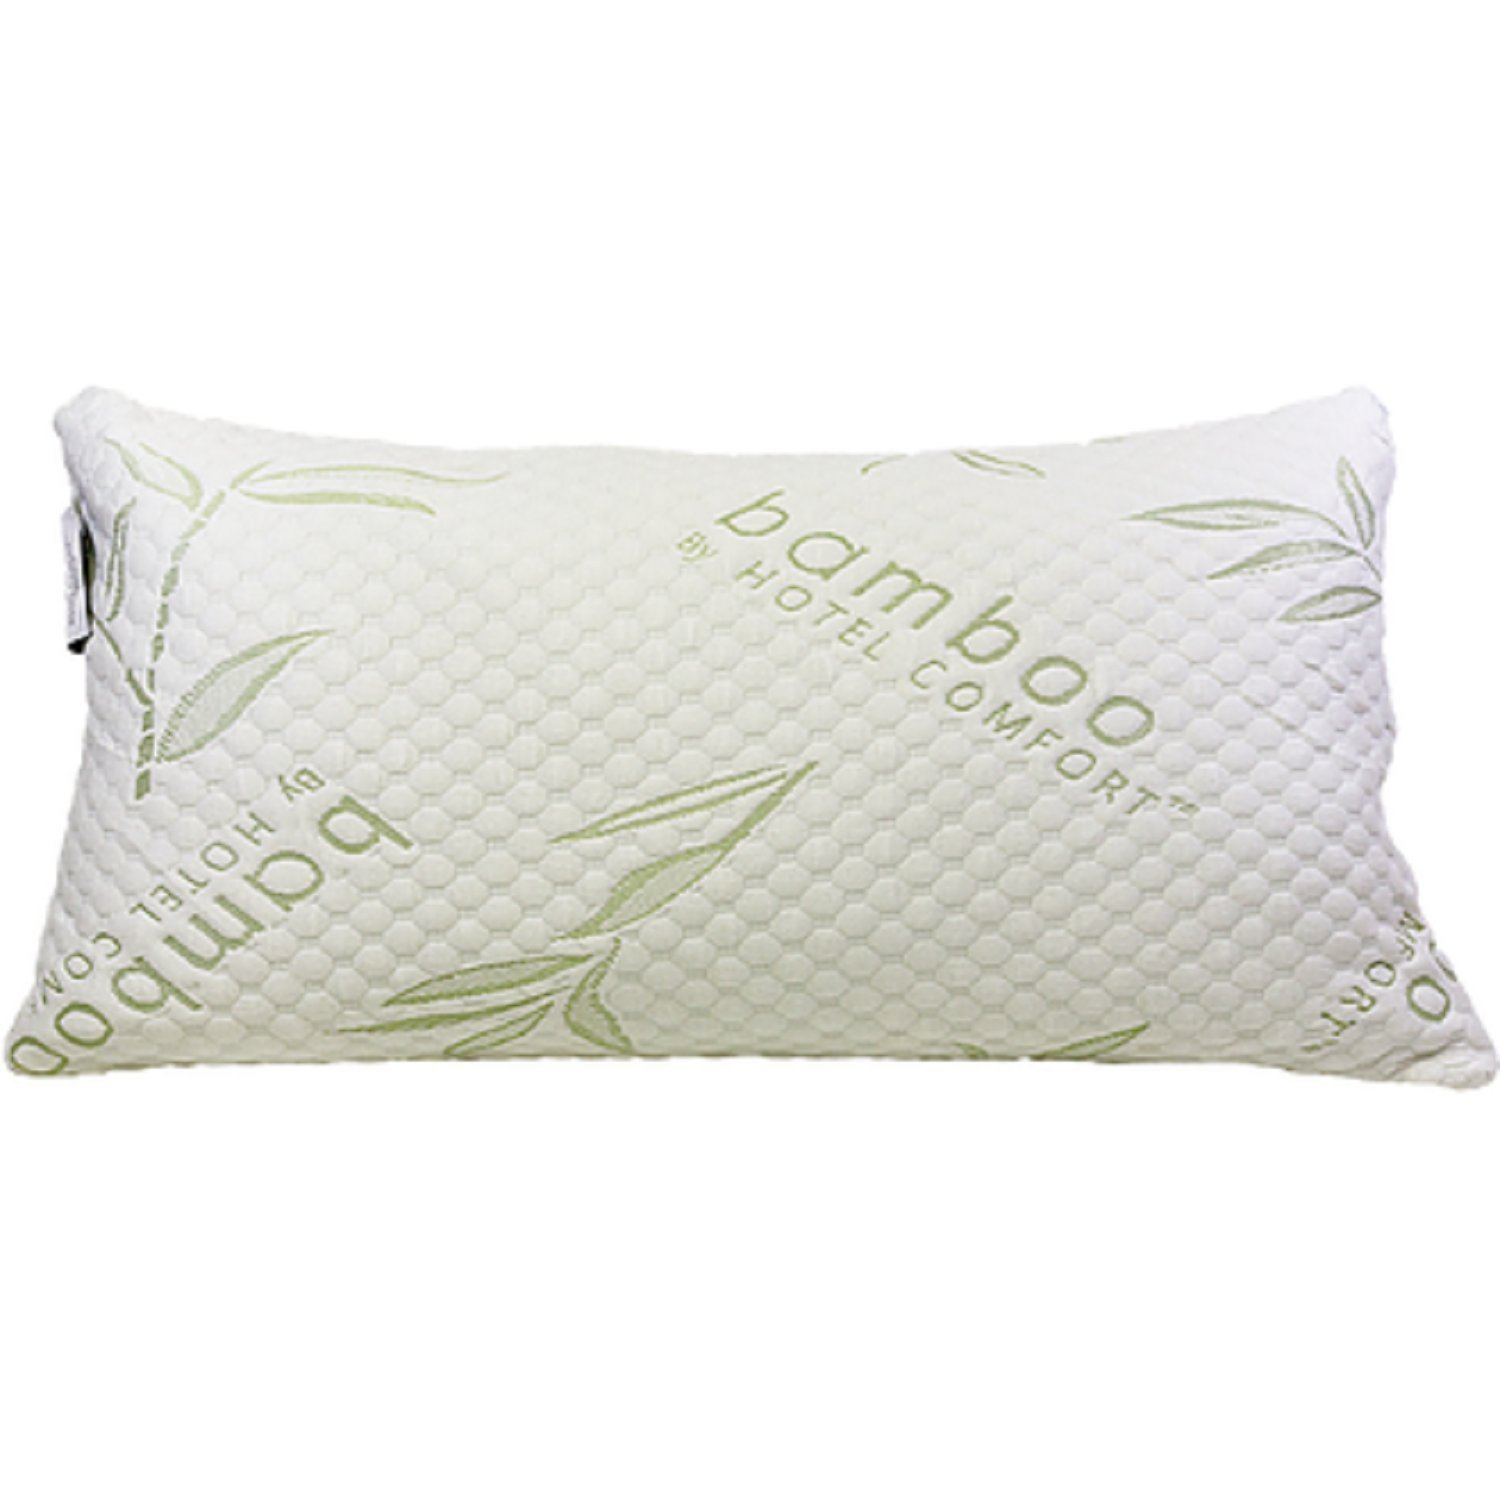 crafthubs bamboo case comforters comforter pillow wonderful ideas hotel comfort body personalized king detail leopard